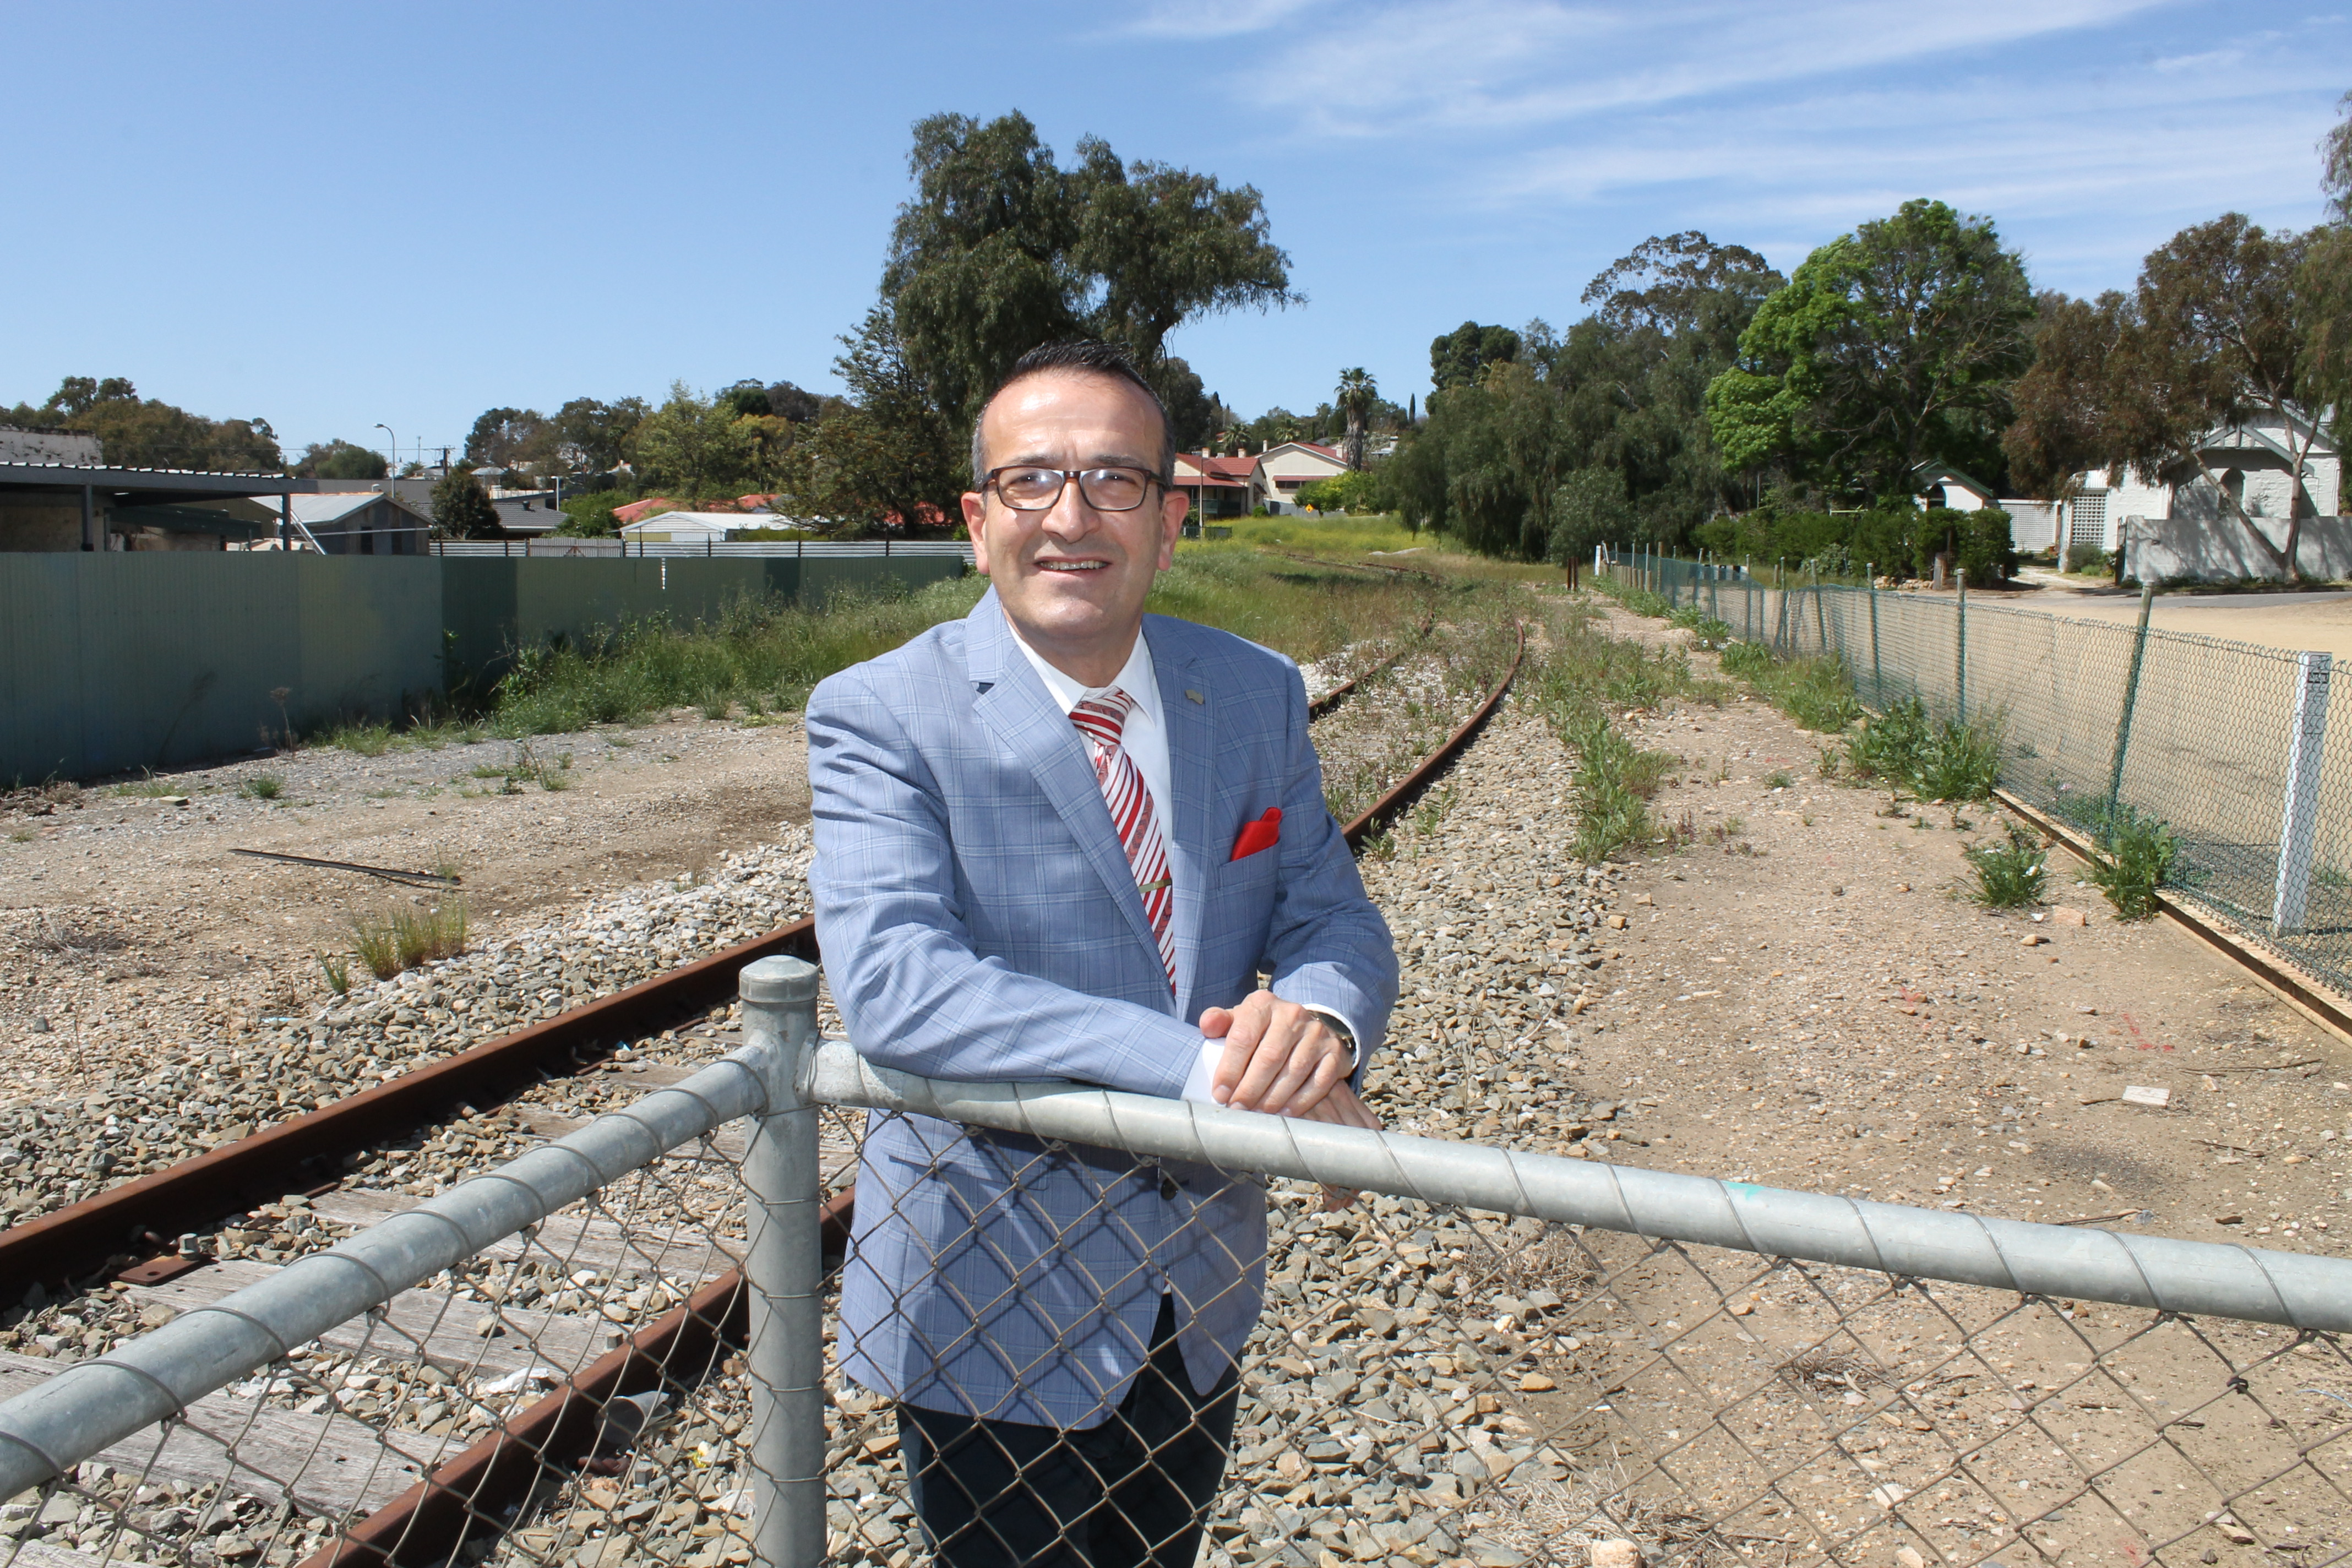 Tony Piccolo at the site of a possible new Gawler platform or siding where a tourist train service to the Barossa could start from.